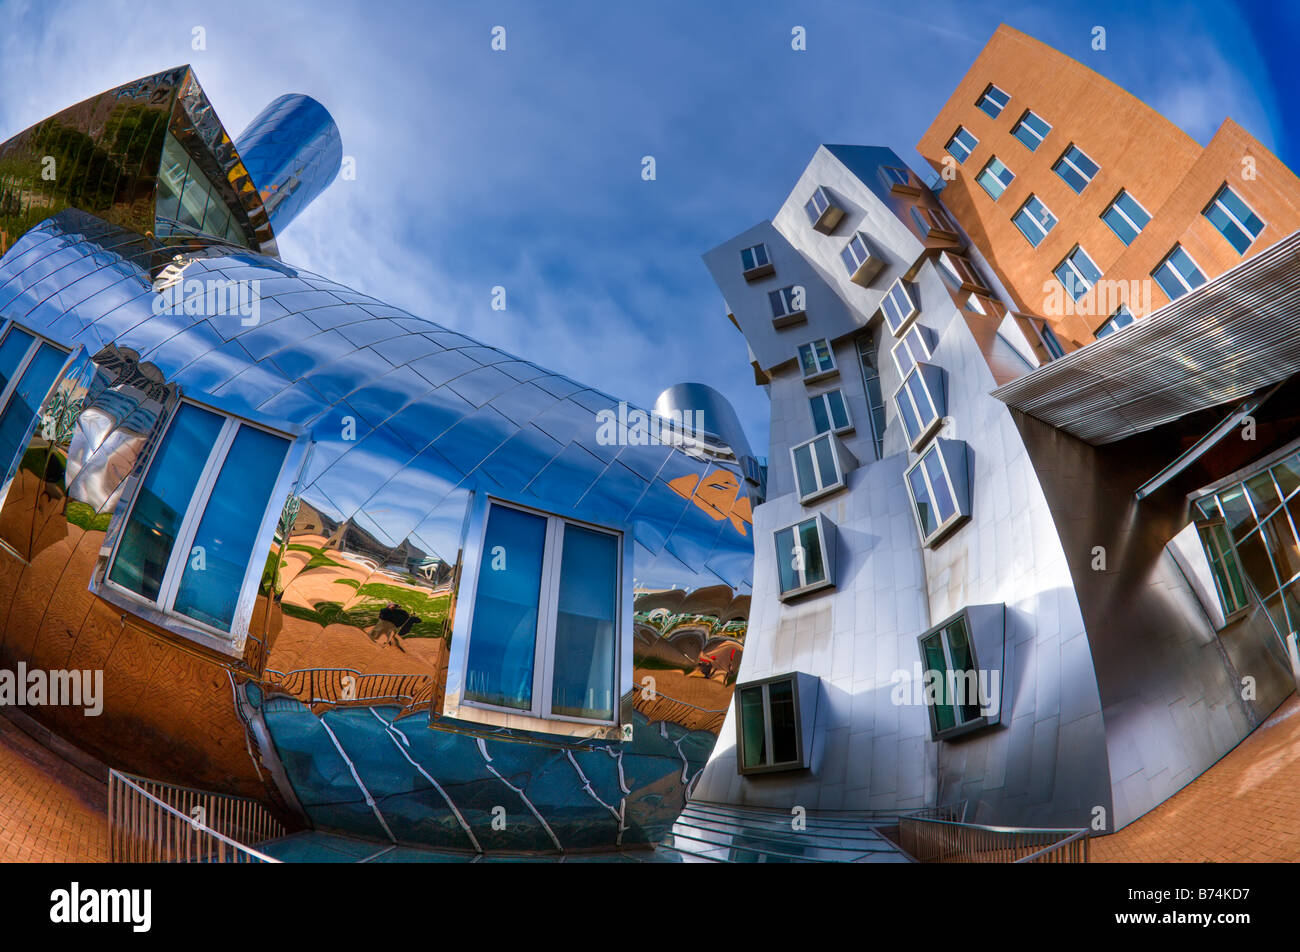 Stata Center, MIT campus, Boston, MA.  Frank Gehry designed building.  HDR image - Stock Image